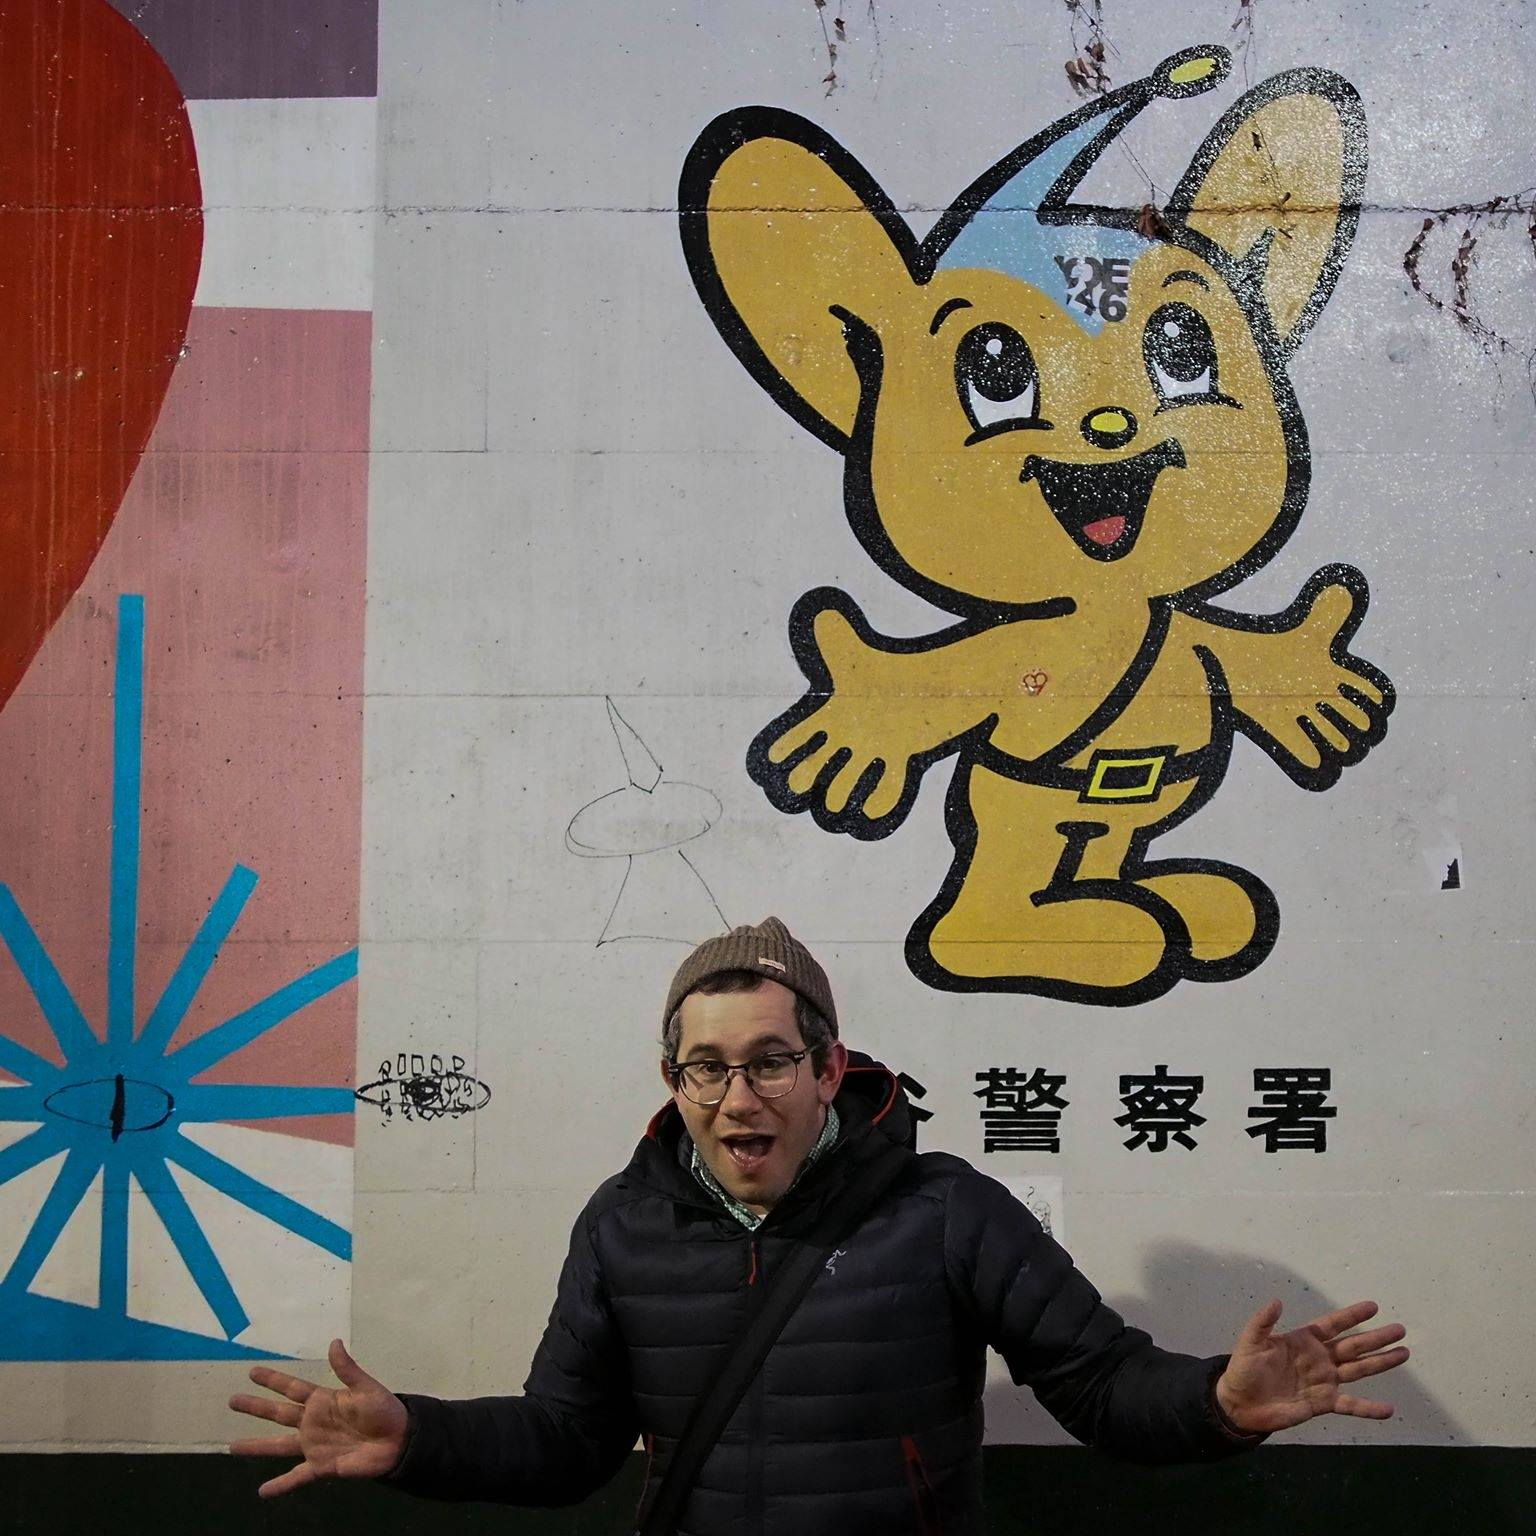 Simon in Tokyo with the police mascot